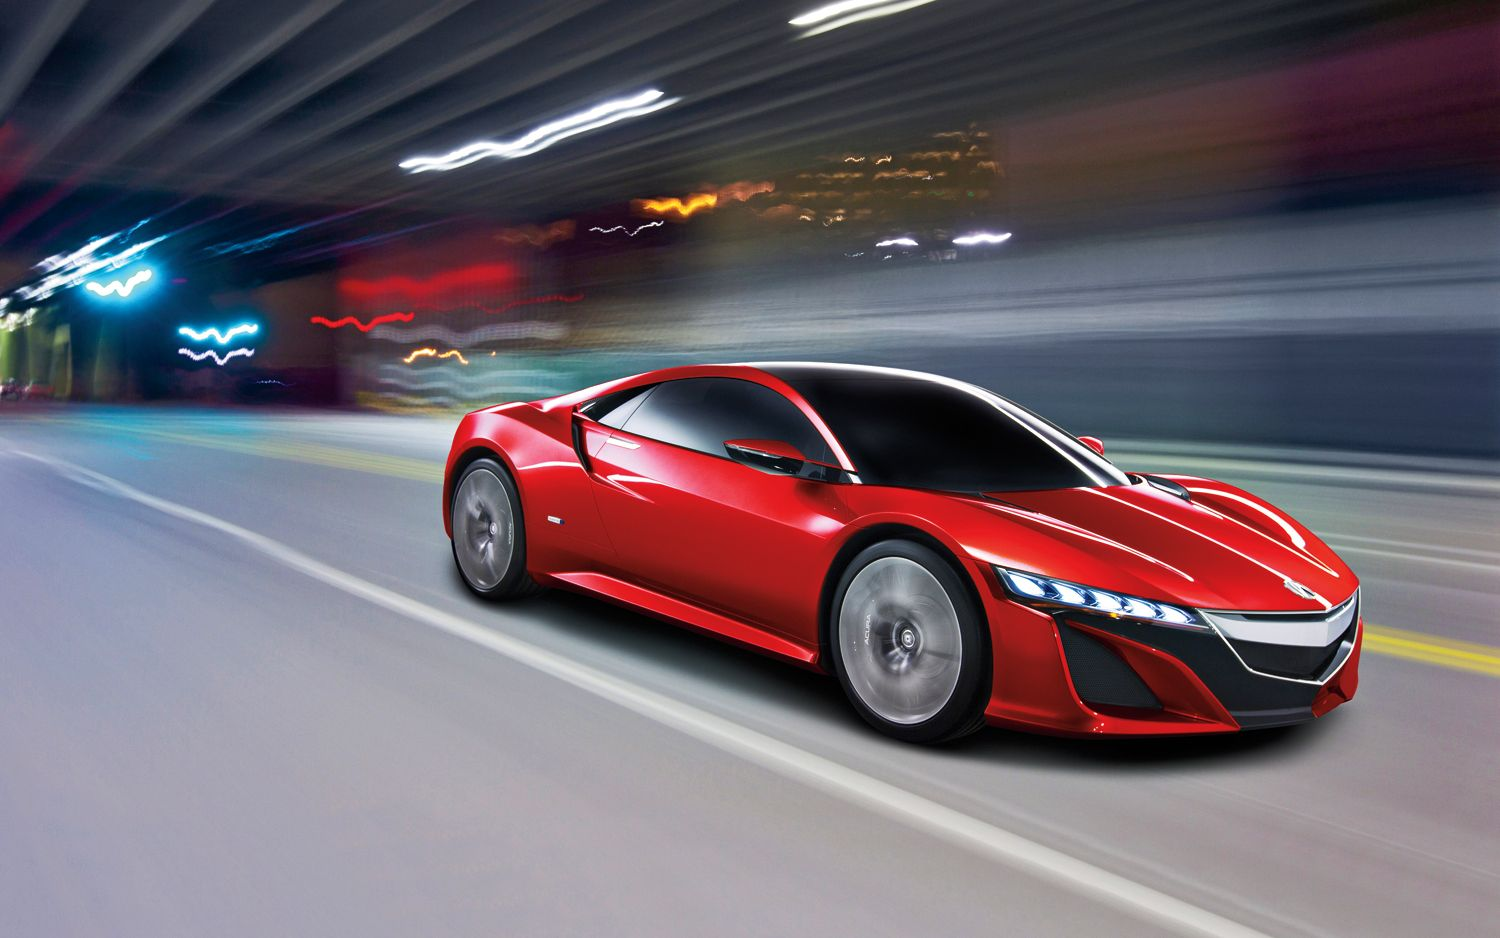 Acura nsx wallpapers get free top quality acura nsx wallpapers for acura nsx wallpapers get free top quality acura nsx wallpapers for your desktop pc background voltagebd Gallery